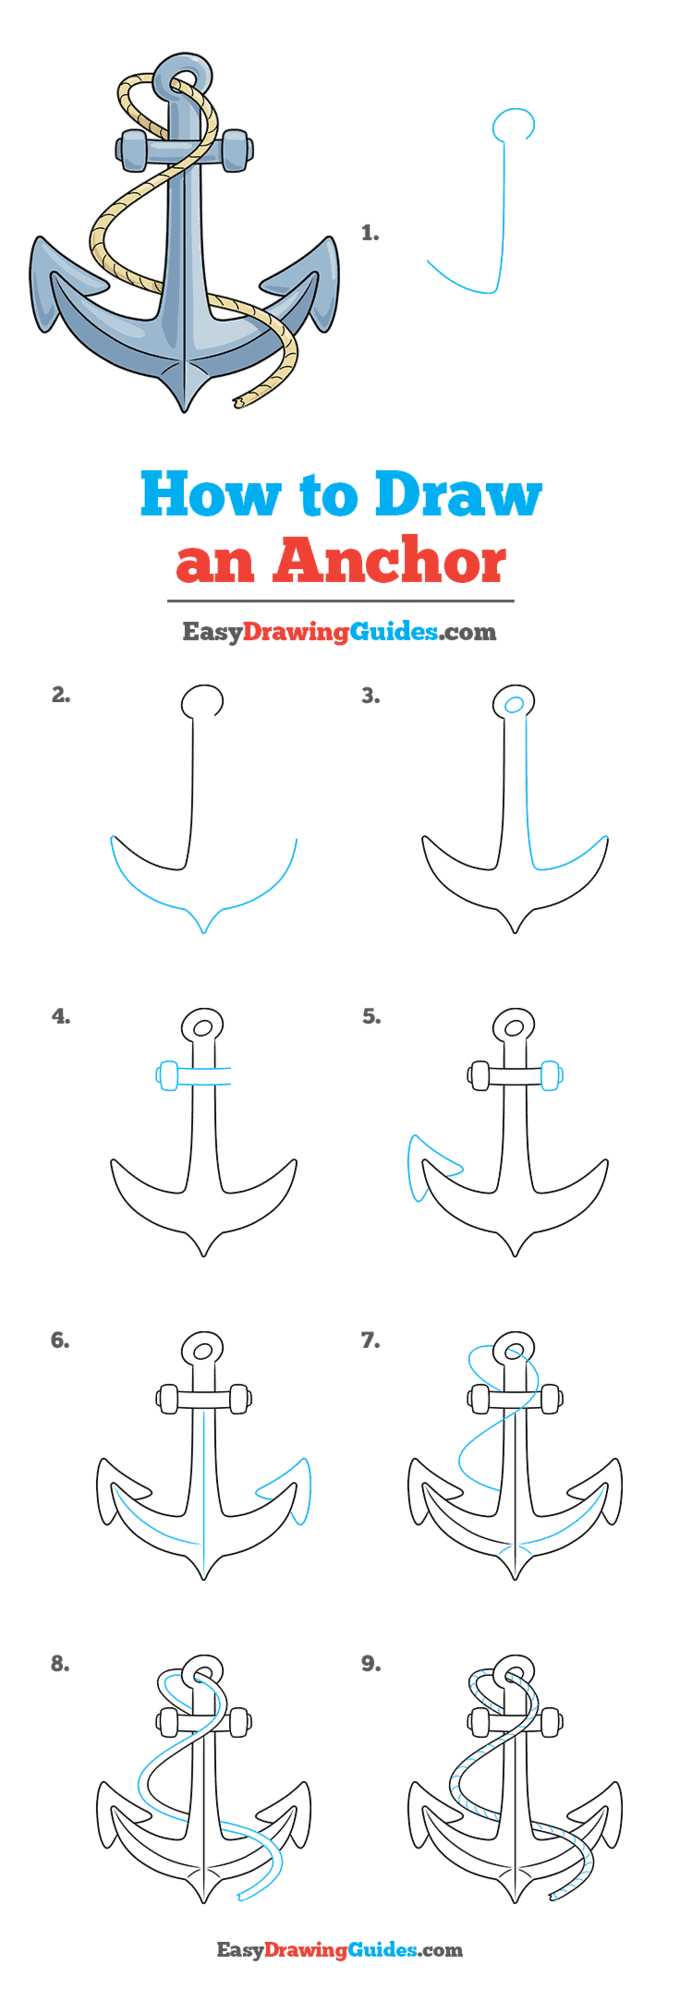 how to draw an anchor step by step tutorial image